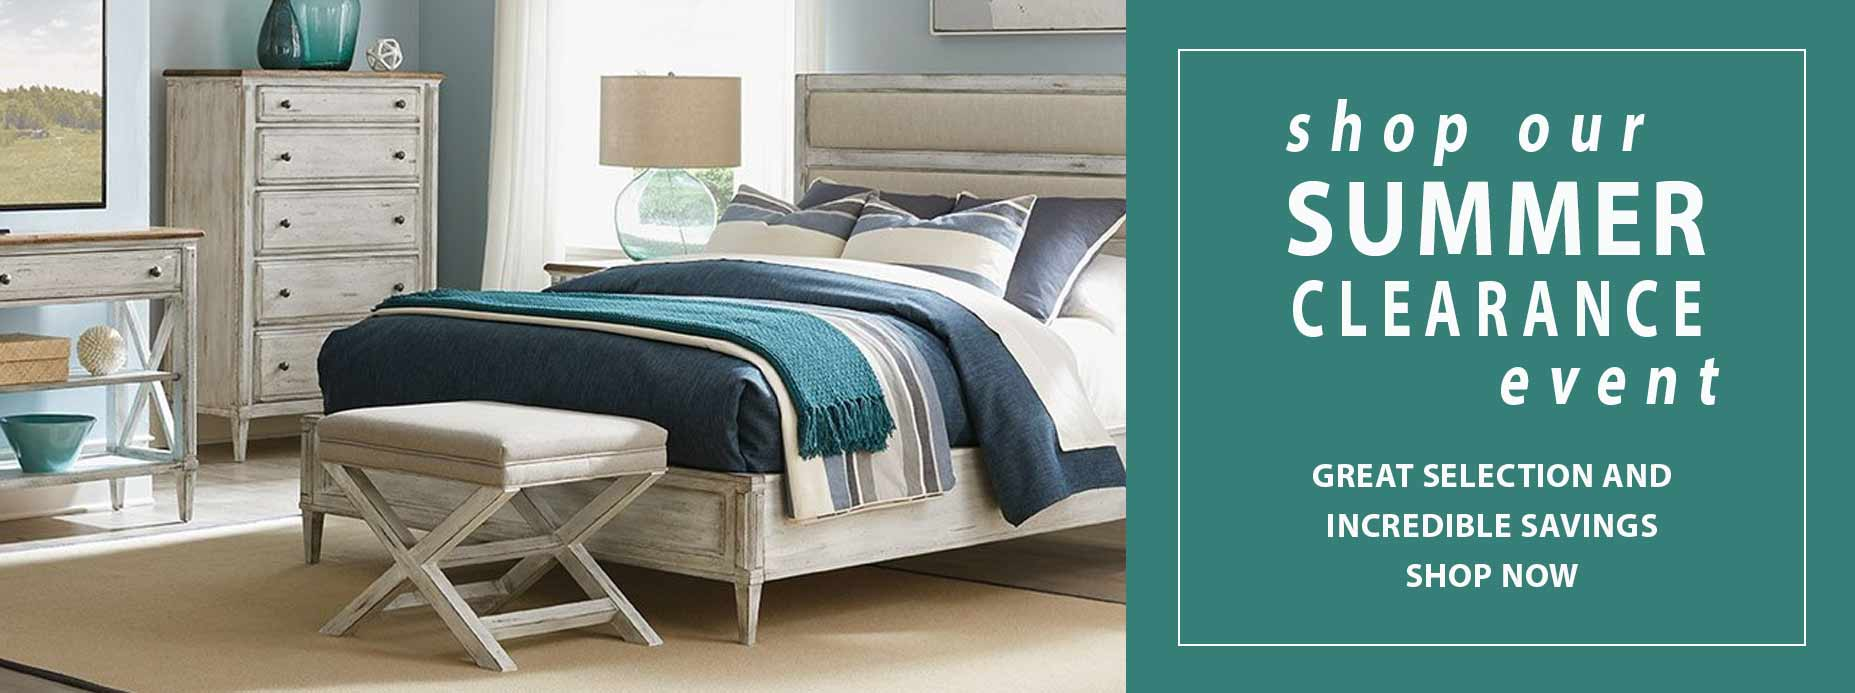 North Carolina Furniture S Offer Brand Name In Hickory Nc 28602